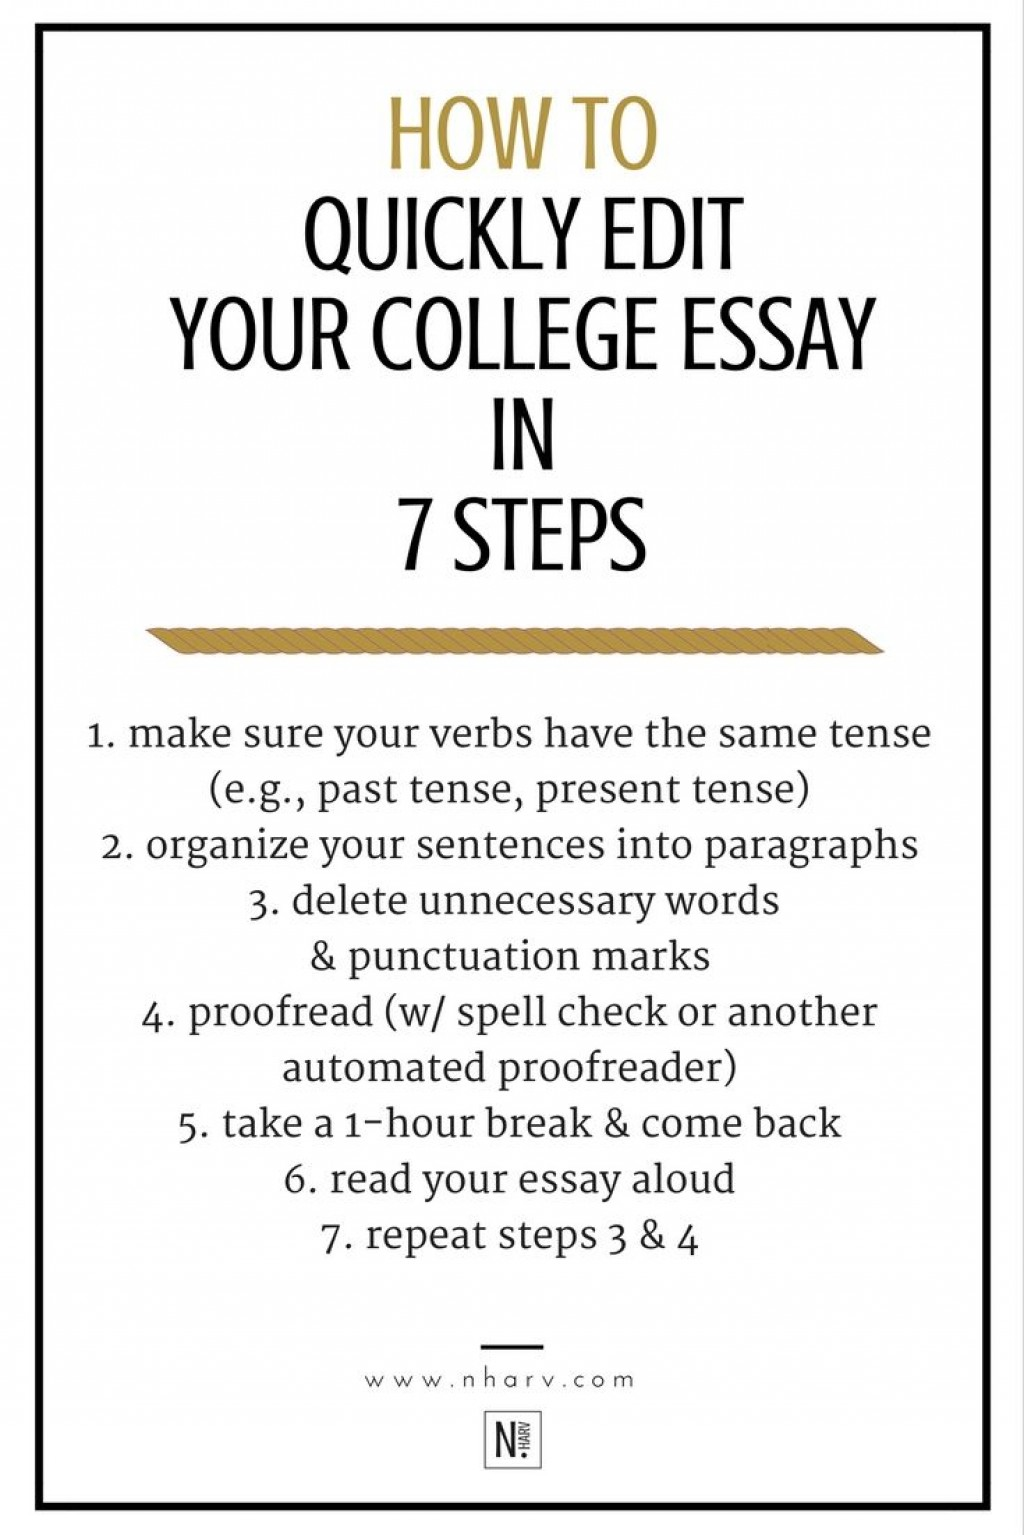 008 Essay Example College Editing Amazing Services Service Reviews Free Large